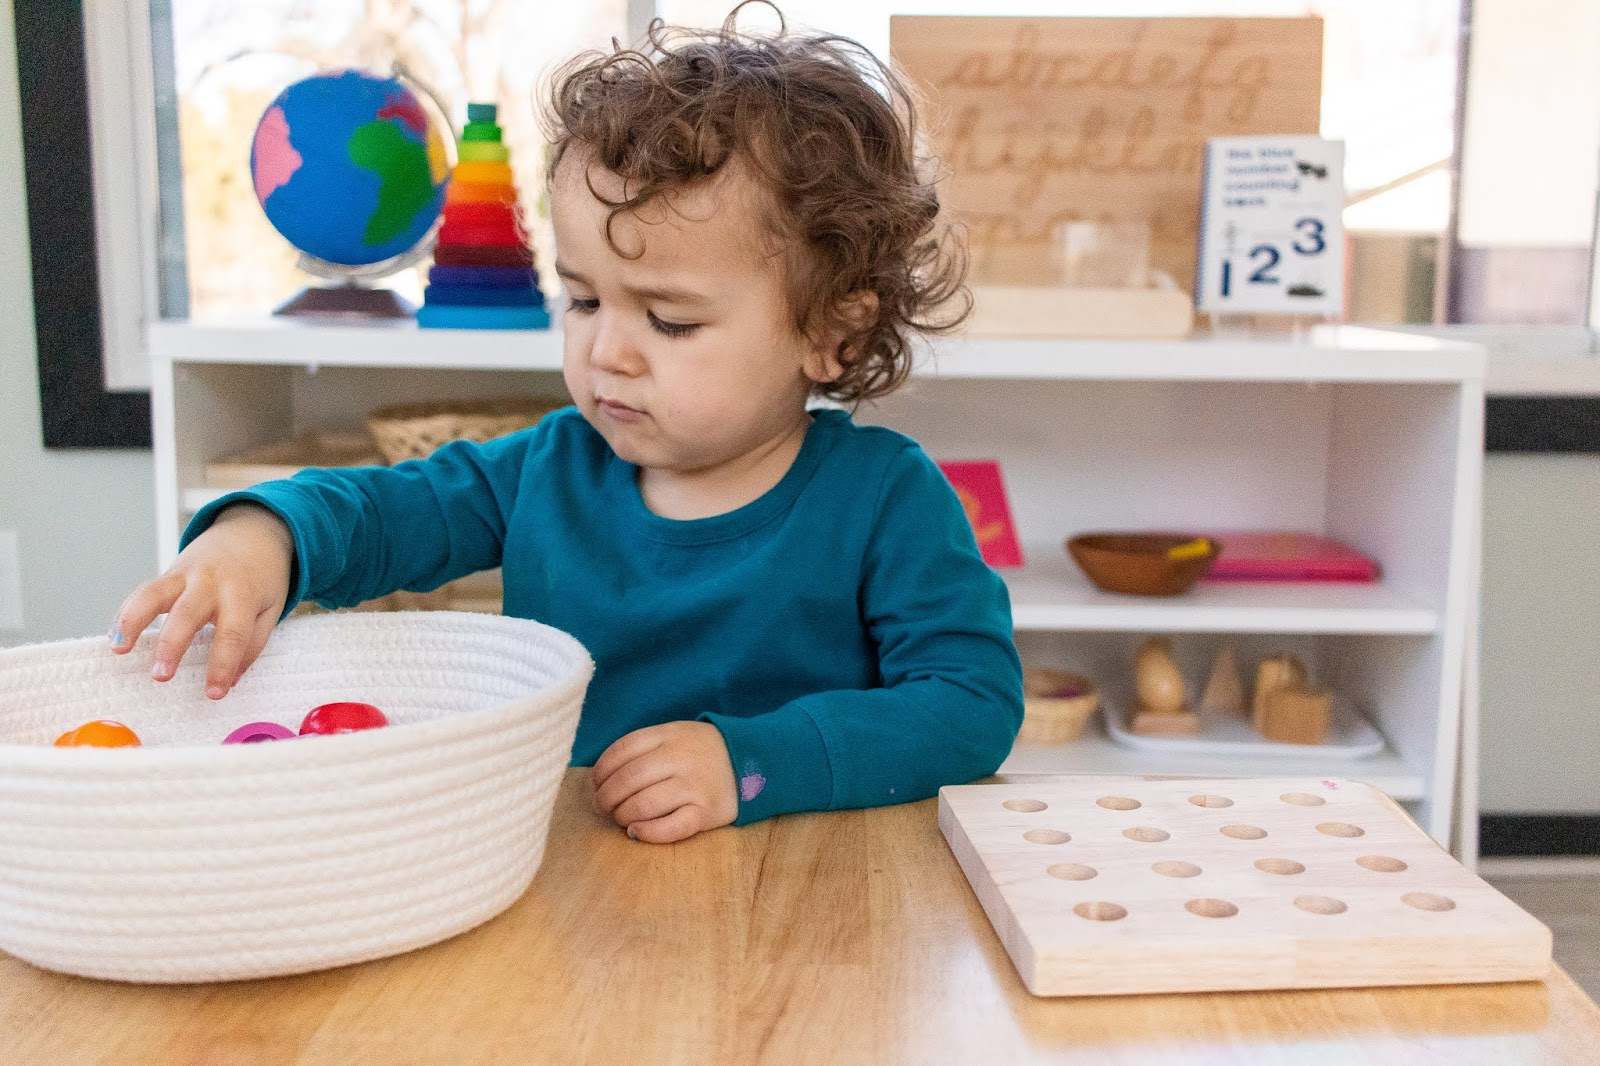 Montessori parenting advice to deal with new changes in routine and order. Here are some tips to help make a transition home easier for everyone during the Covid-19 pandemic.